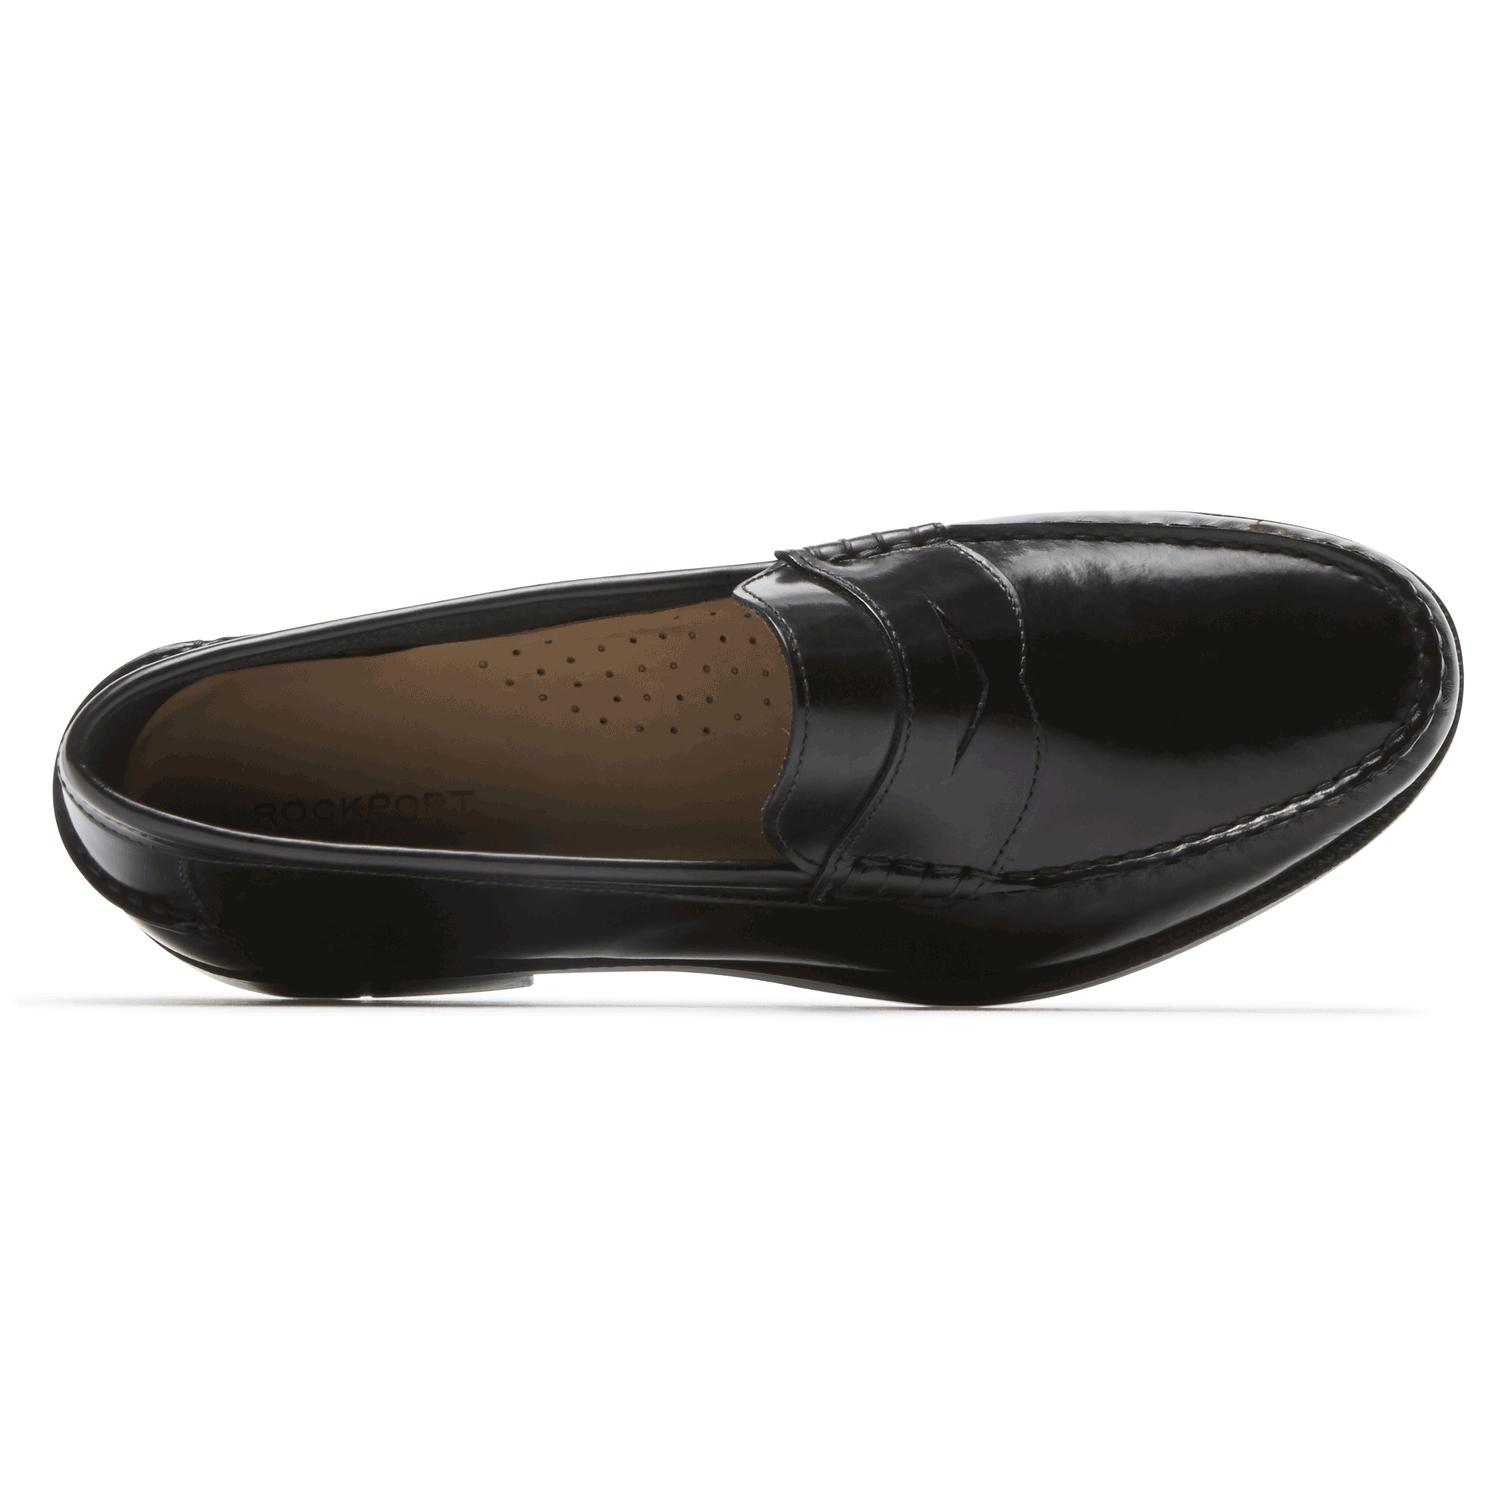 Rockport Leather Everyday Business Penny Loafer in Black ...